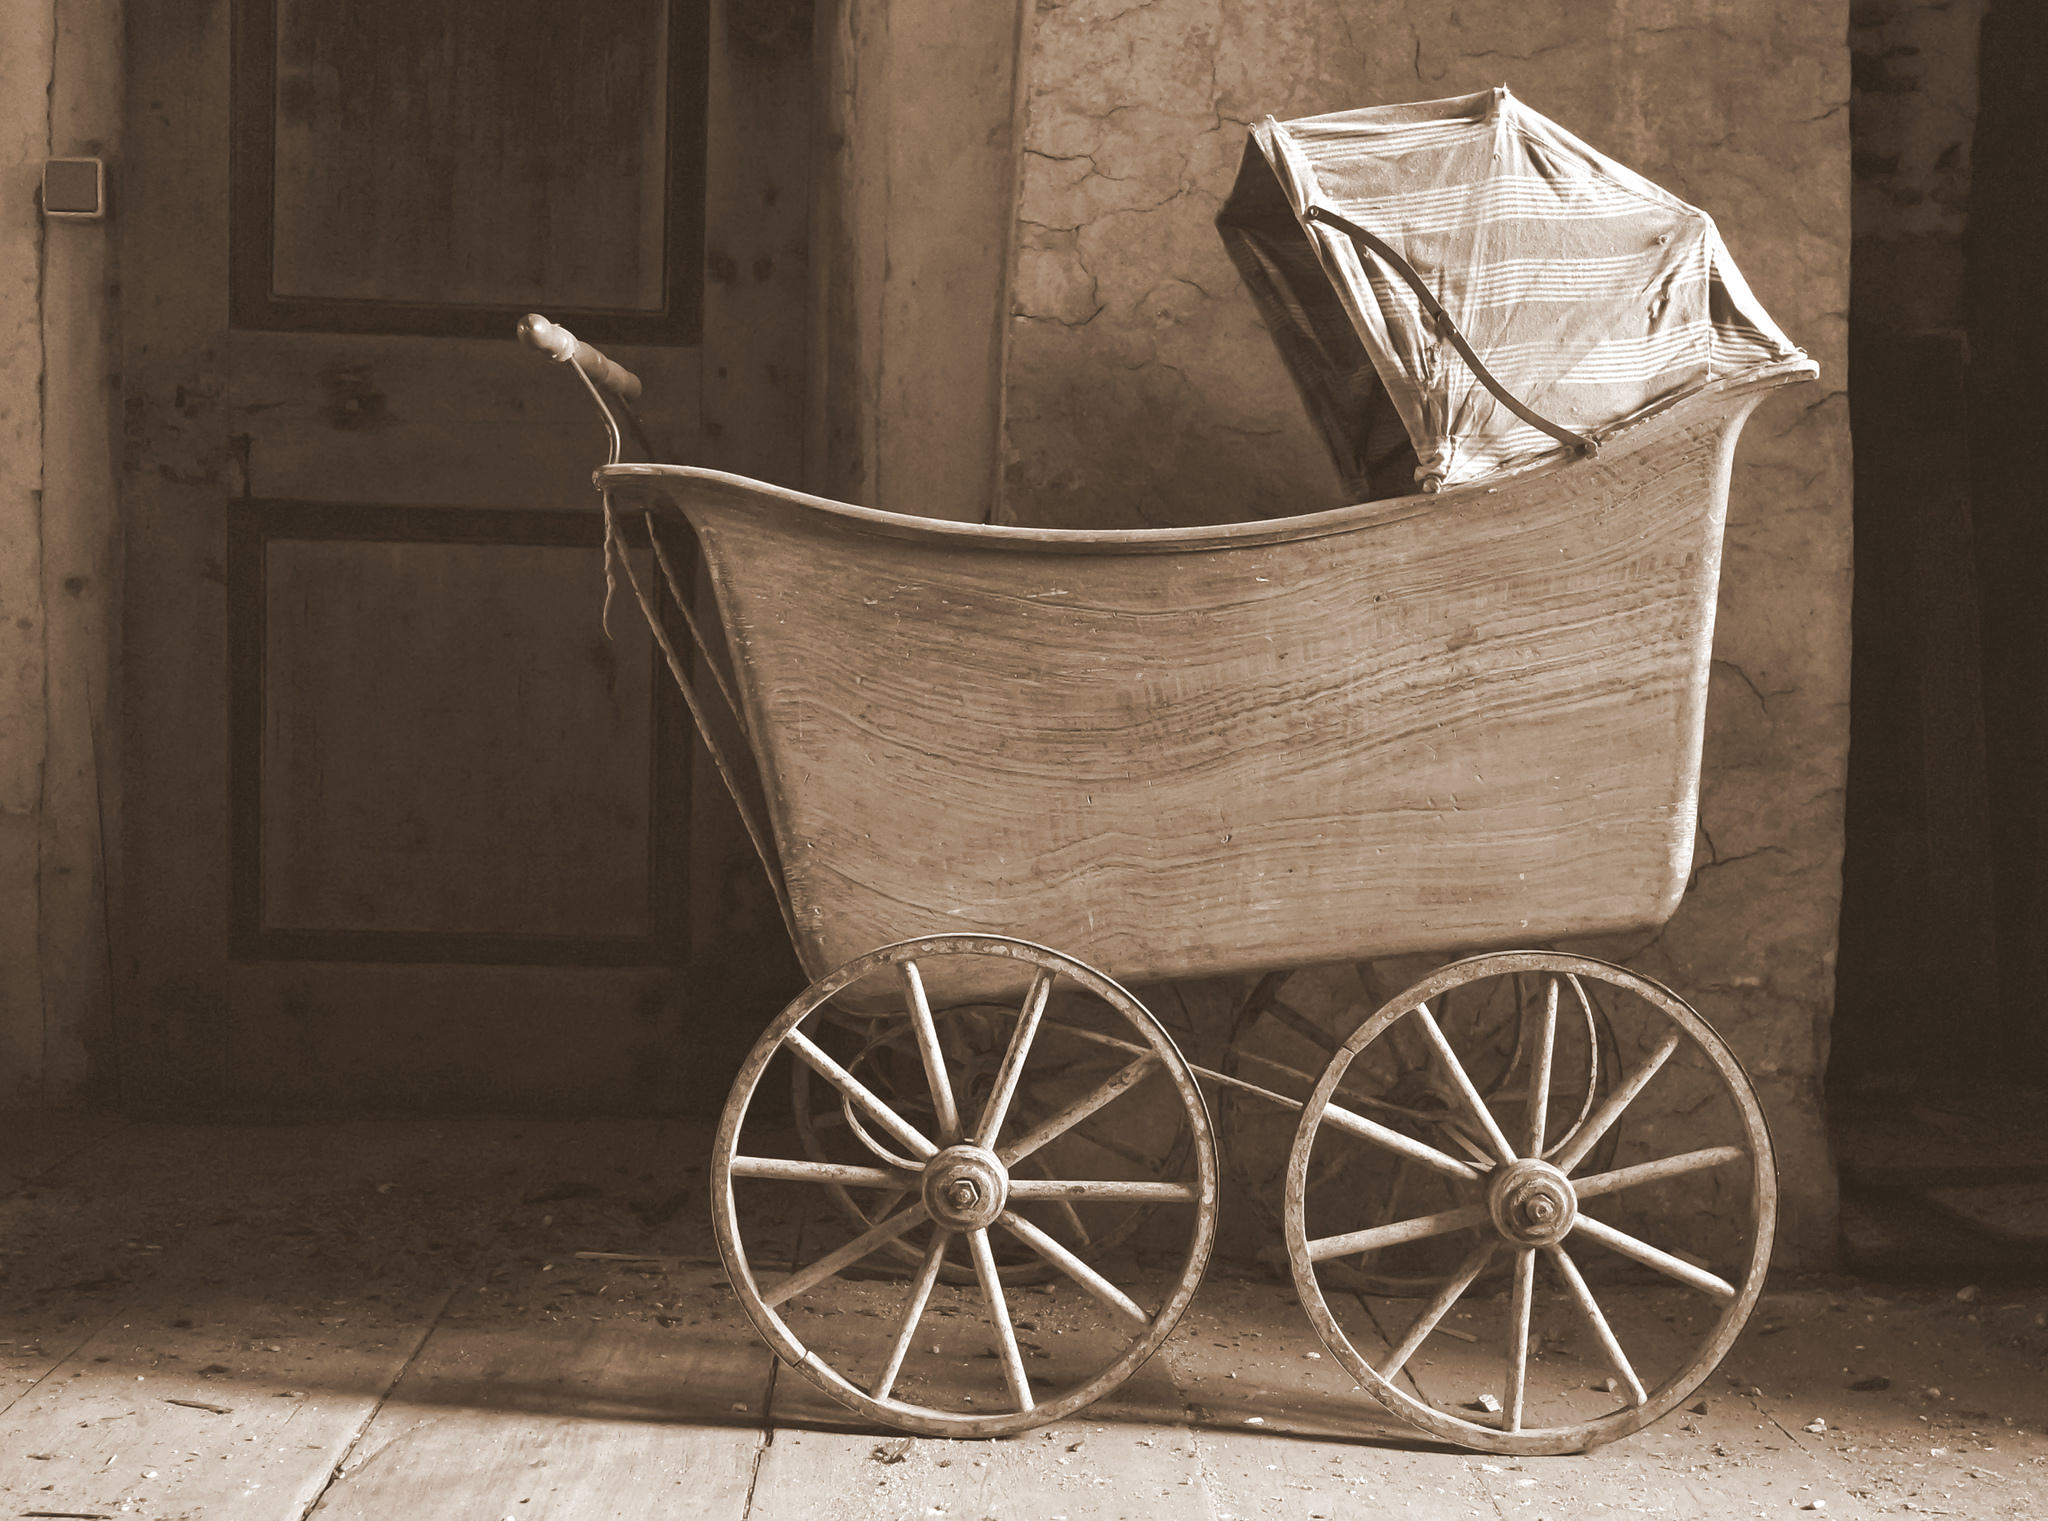 Flickr - old stroller - Anna Laura Irsara